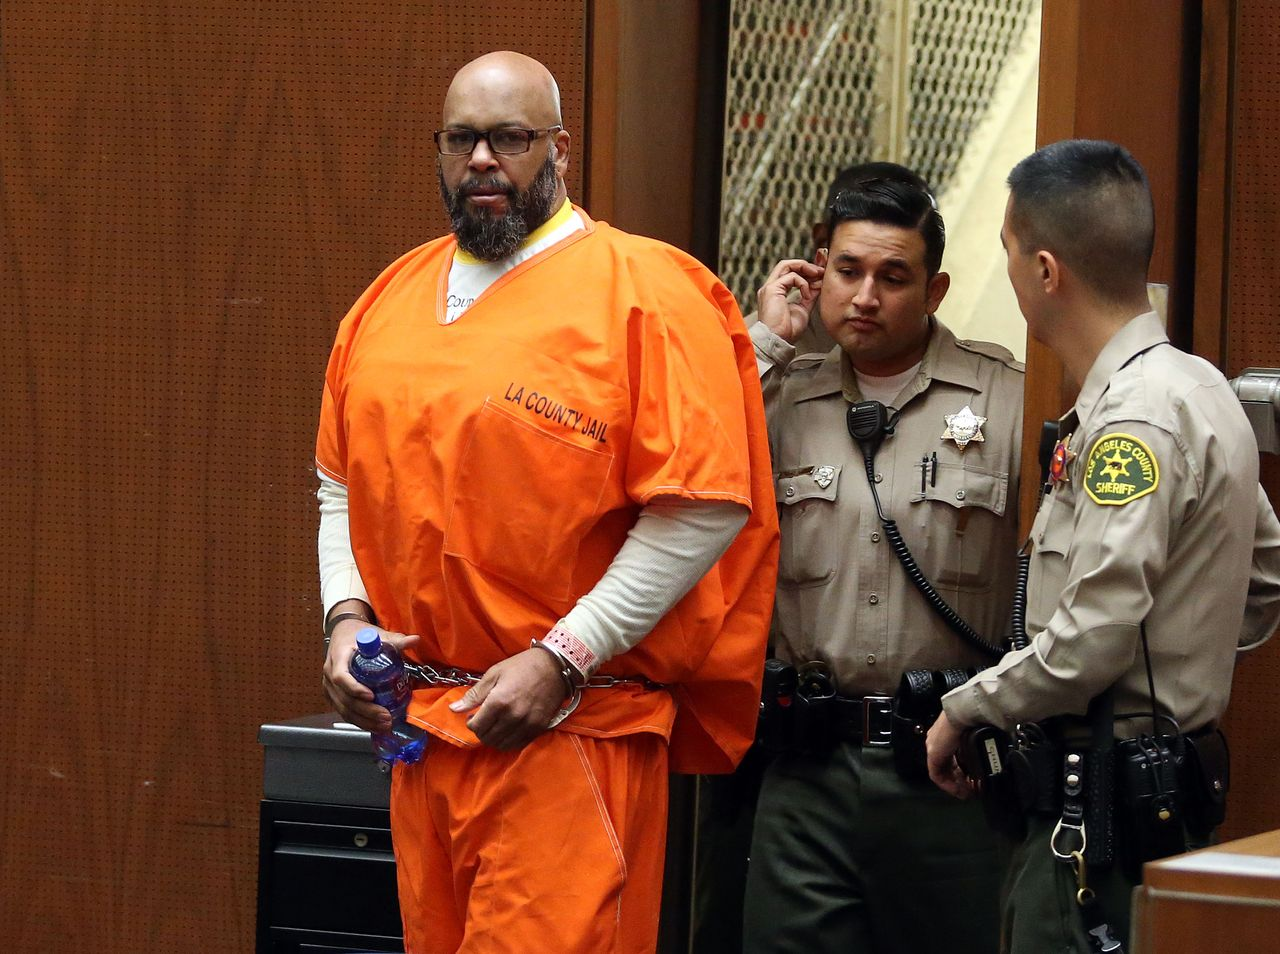 """Marion """"Suge"""" Knight appears in Los Angeles court for a pretrial hearing at the Clara Shortridge Foltz Criminal Justice Center on January 21, 2016 in Los Angeles, California.   Source: Getty Images"""